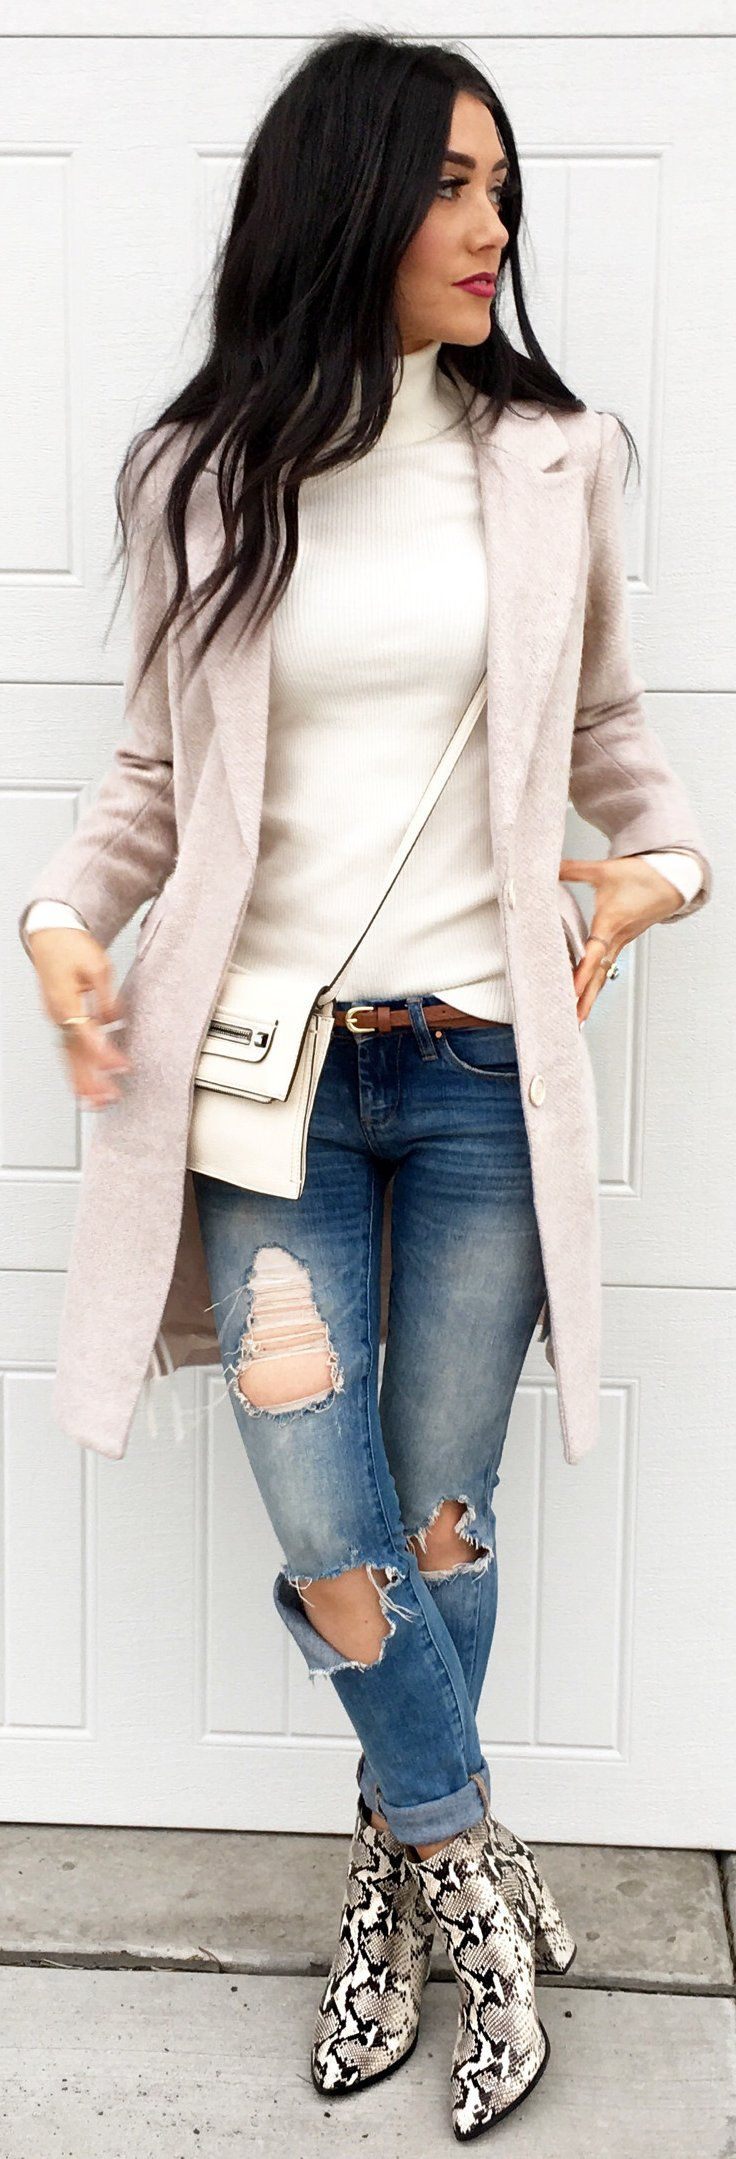 #winter #fashion /  Light Pink Coat / White Turtleneck / Ripped Skinny Jeans / Snake Print Booties